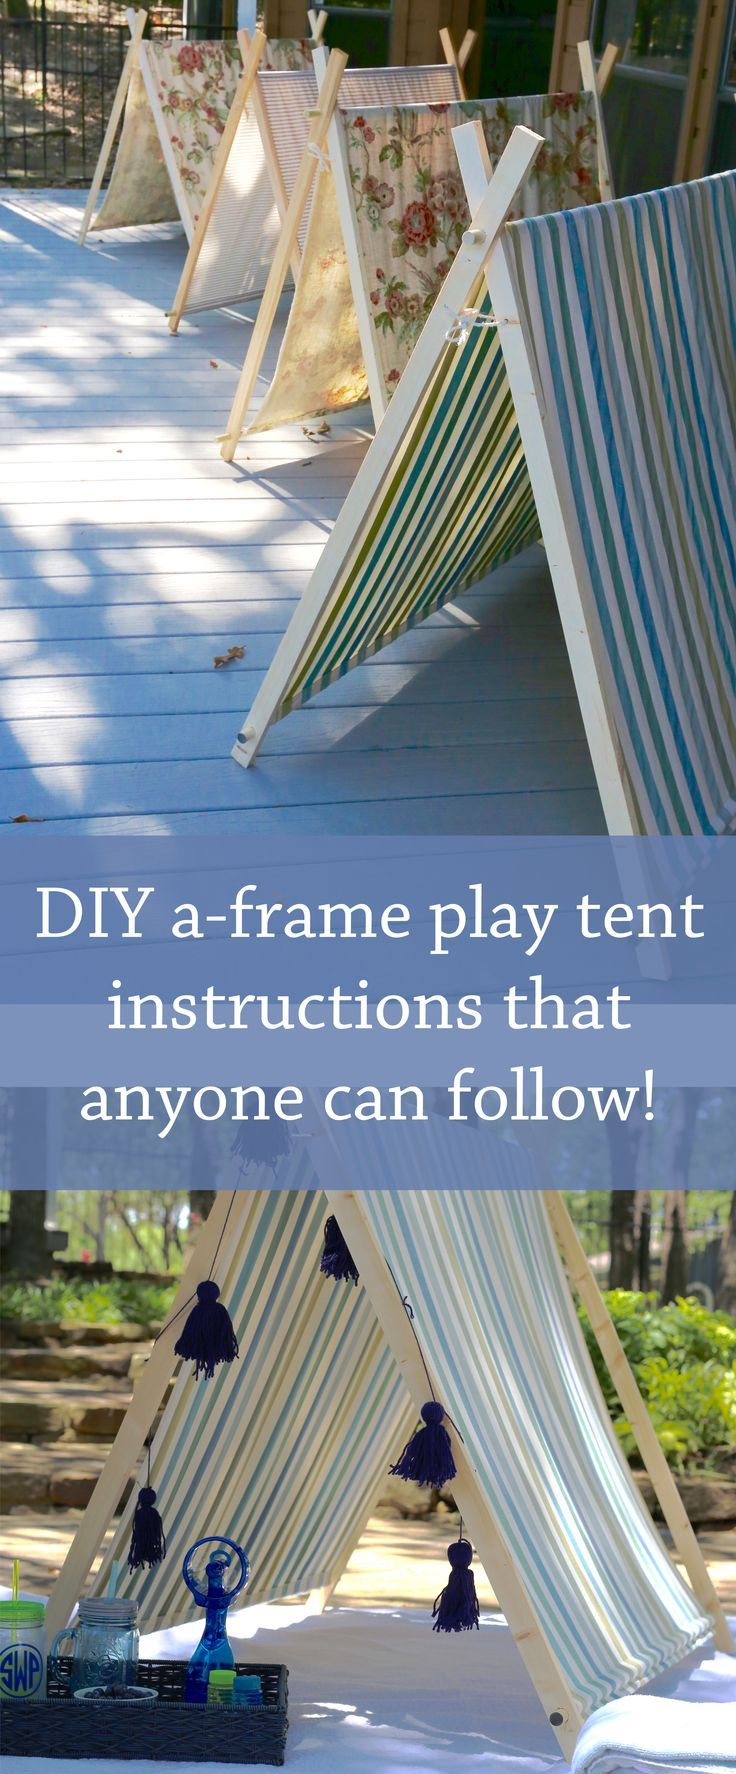 DIY a-frame play tent instructions from http://weestyleguide.com